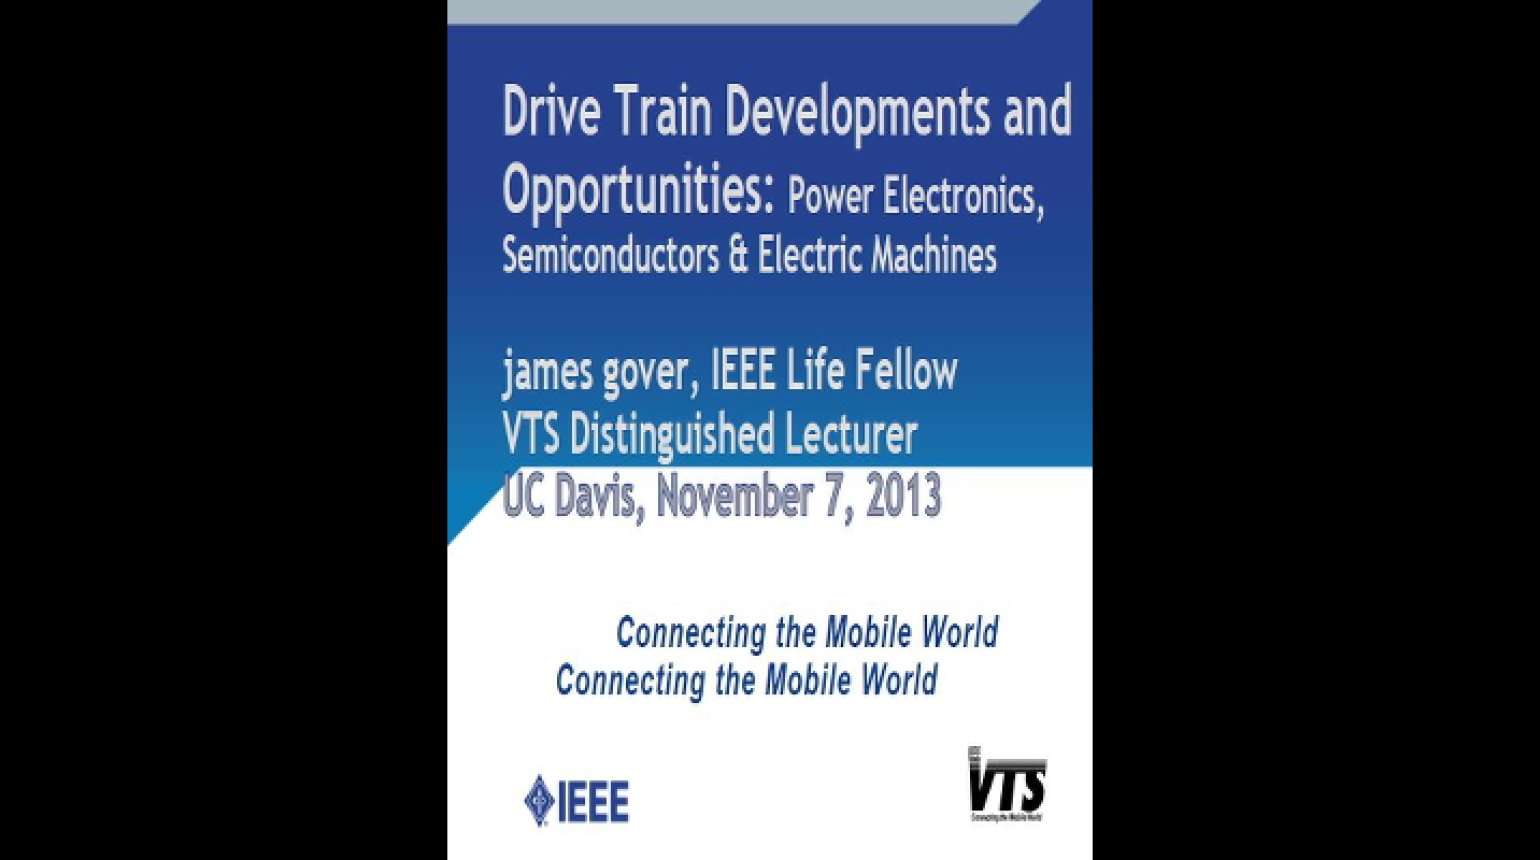 Video - Drive Train Developments and Opportunities: Power Electronics, Semiconductors & Electric Machines